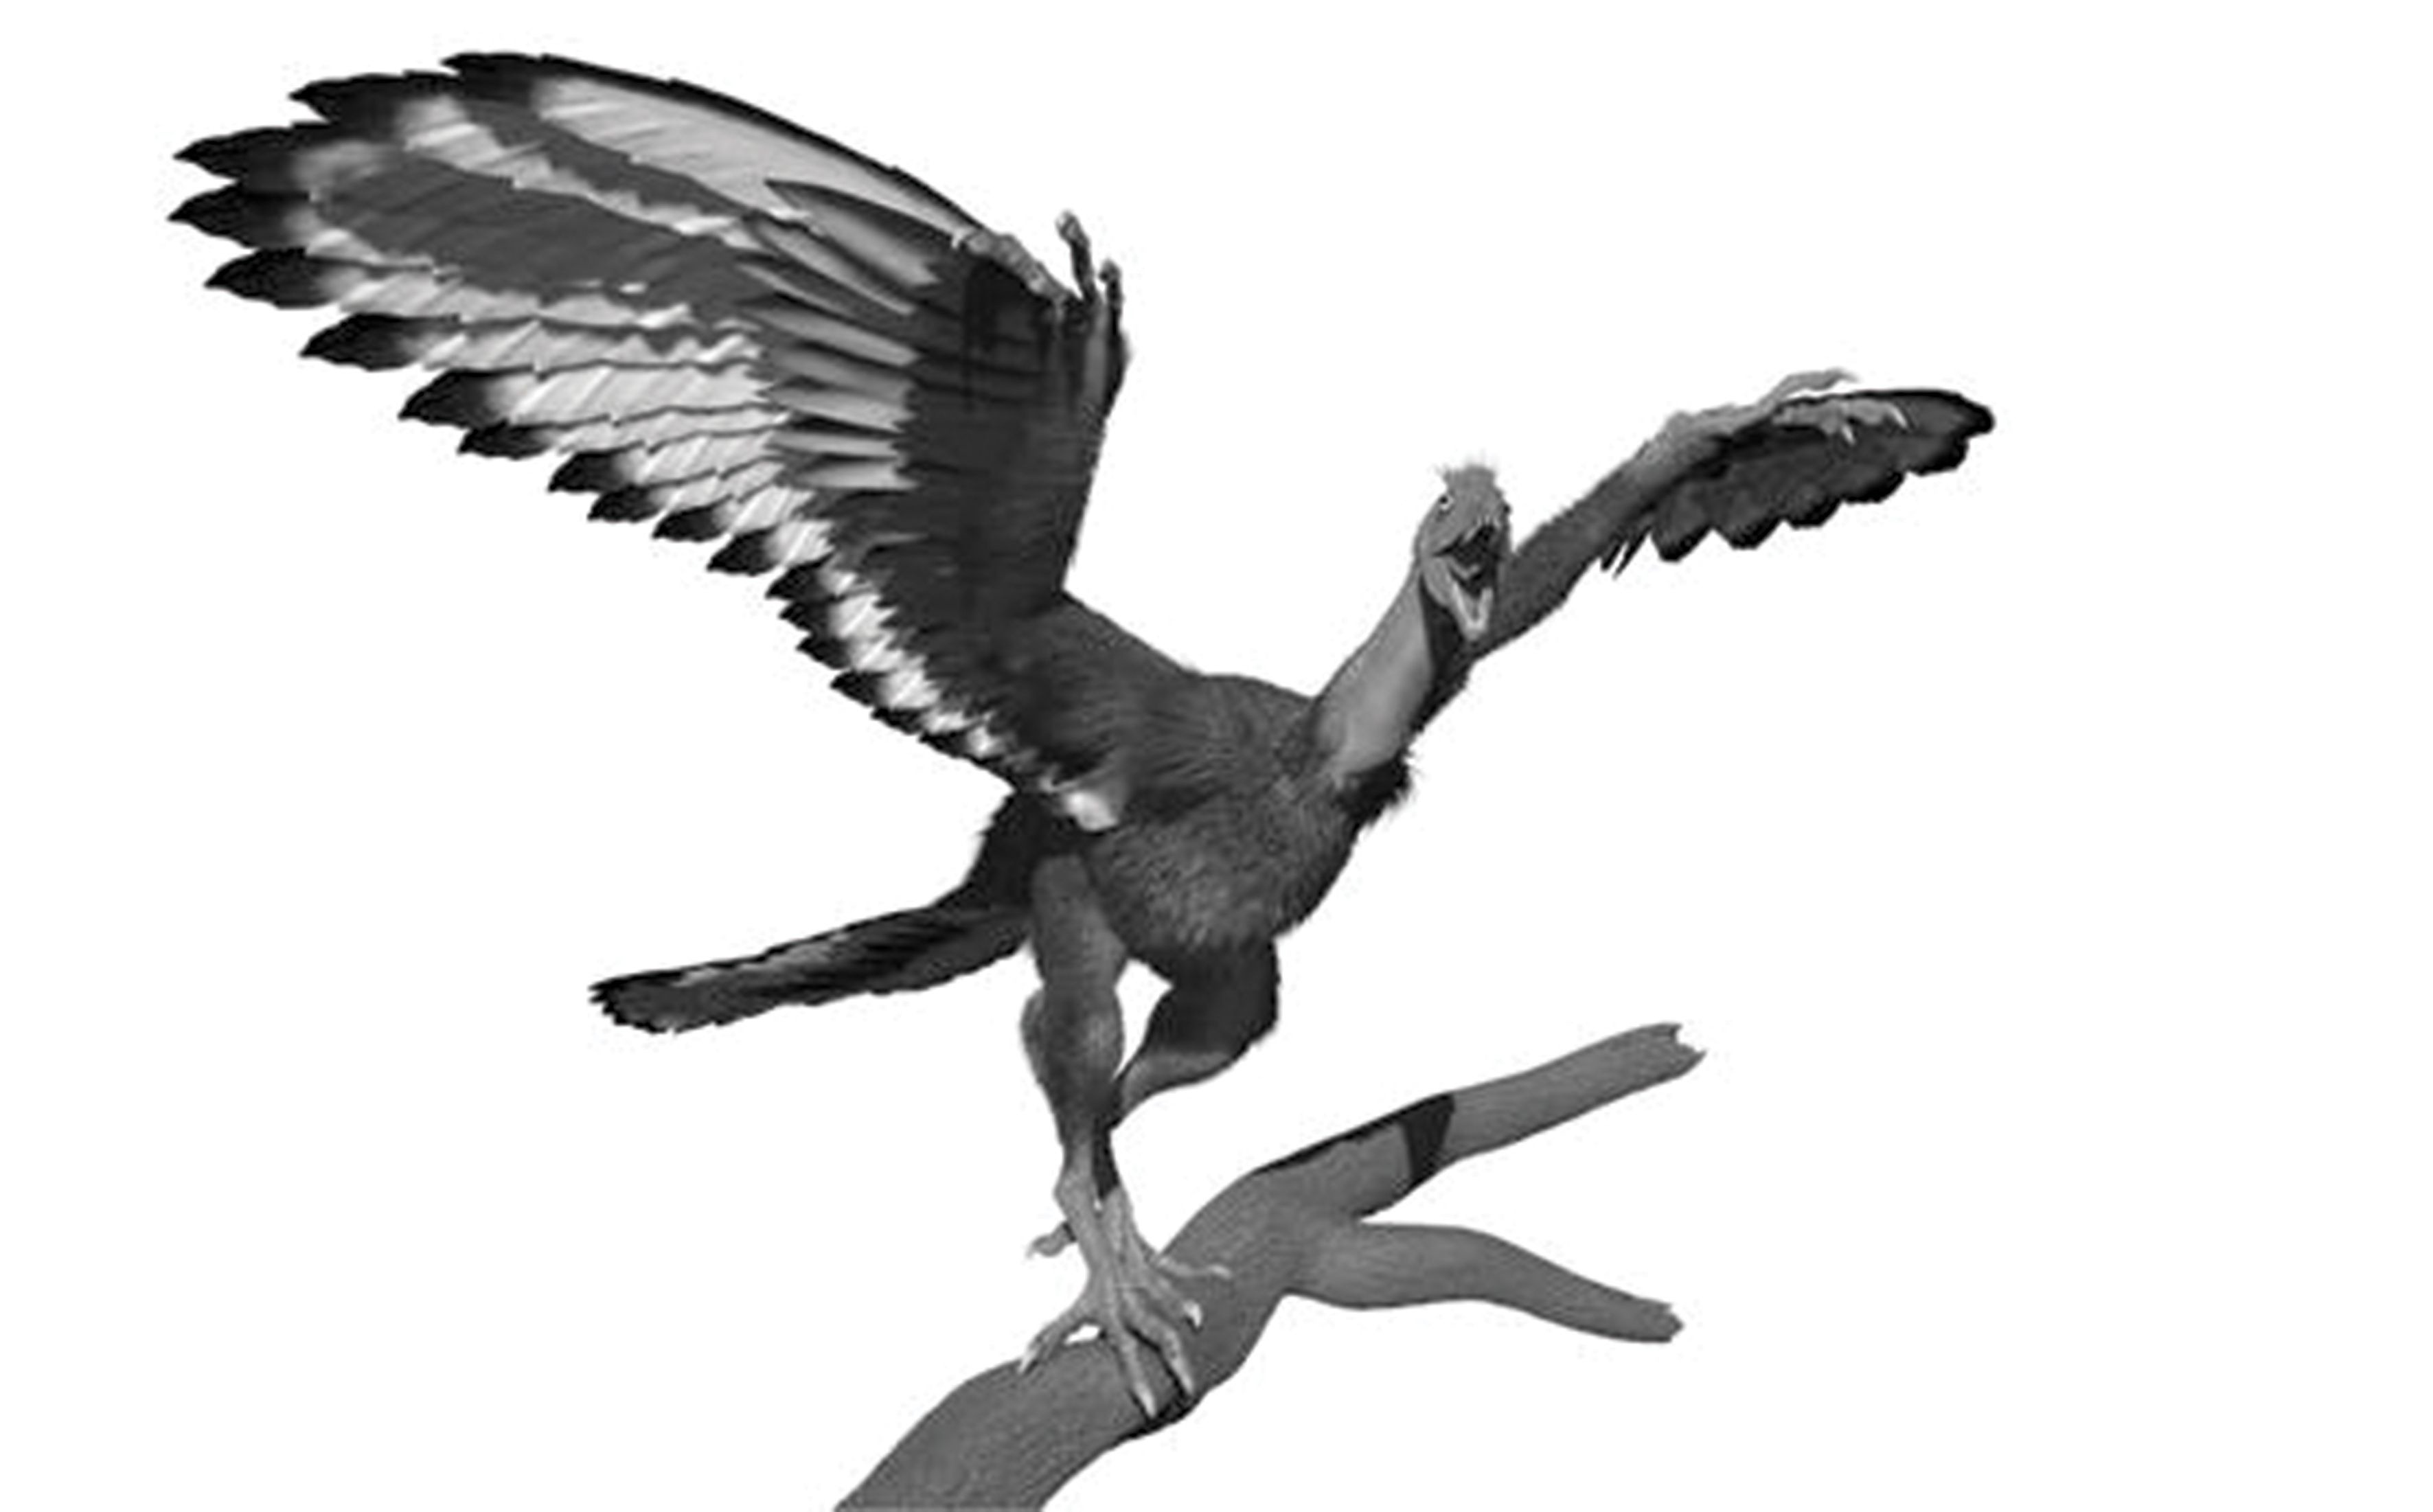 Archaeopteryx : un dinosaure volant, comme un faisan ! By Gurumed.org Archaeopteryx-lithographica-2